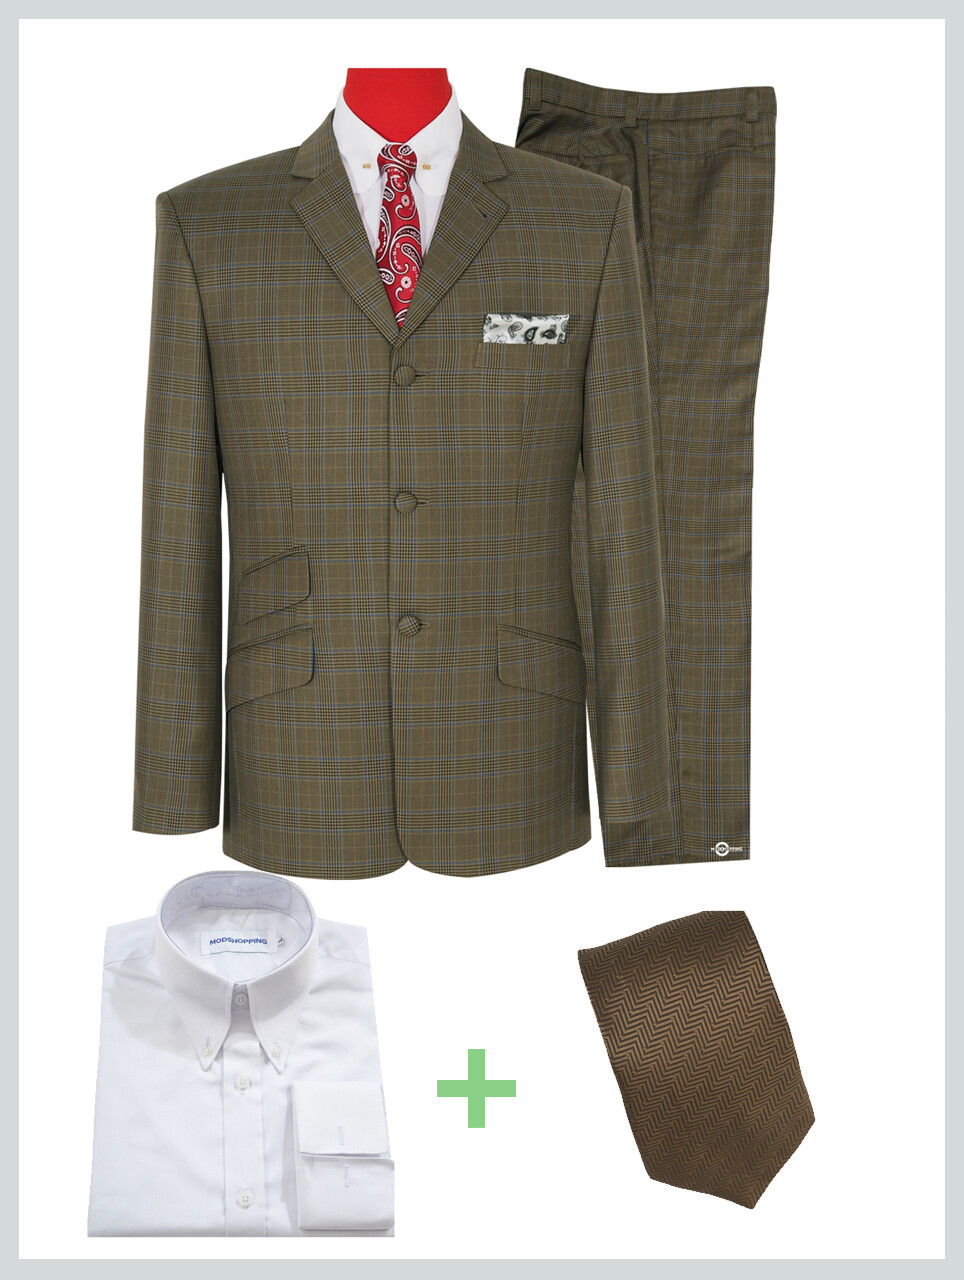 Suit Package Dark Khaki Pow Check Suit For Man. | Buy 1 Free 2